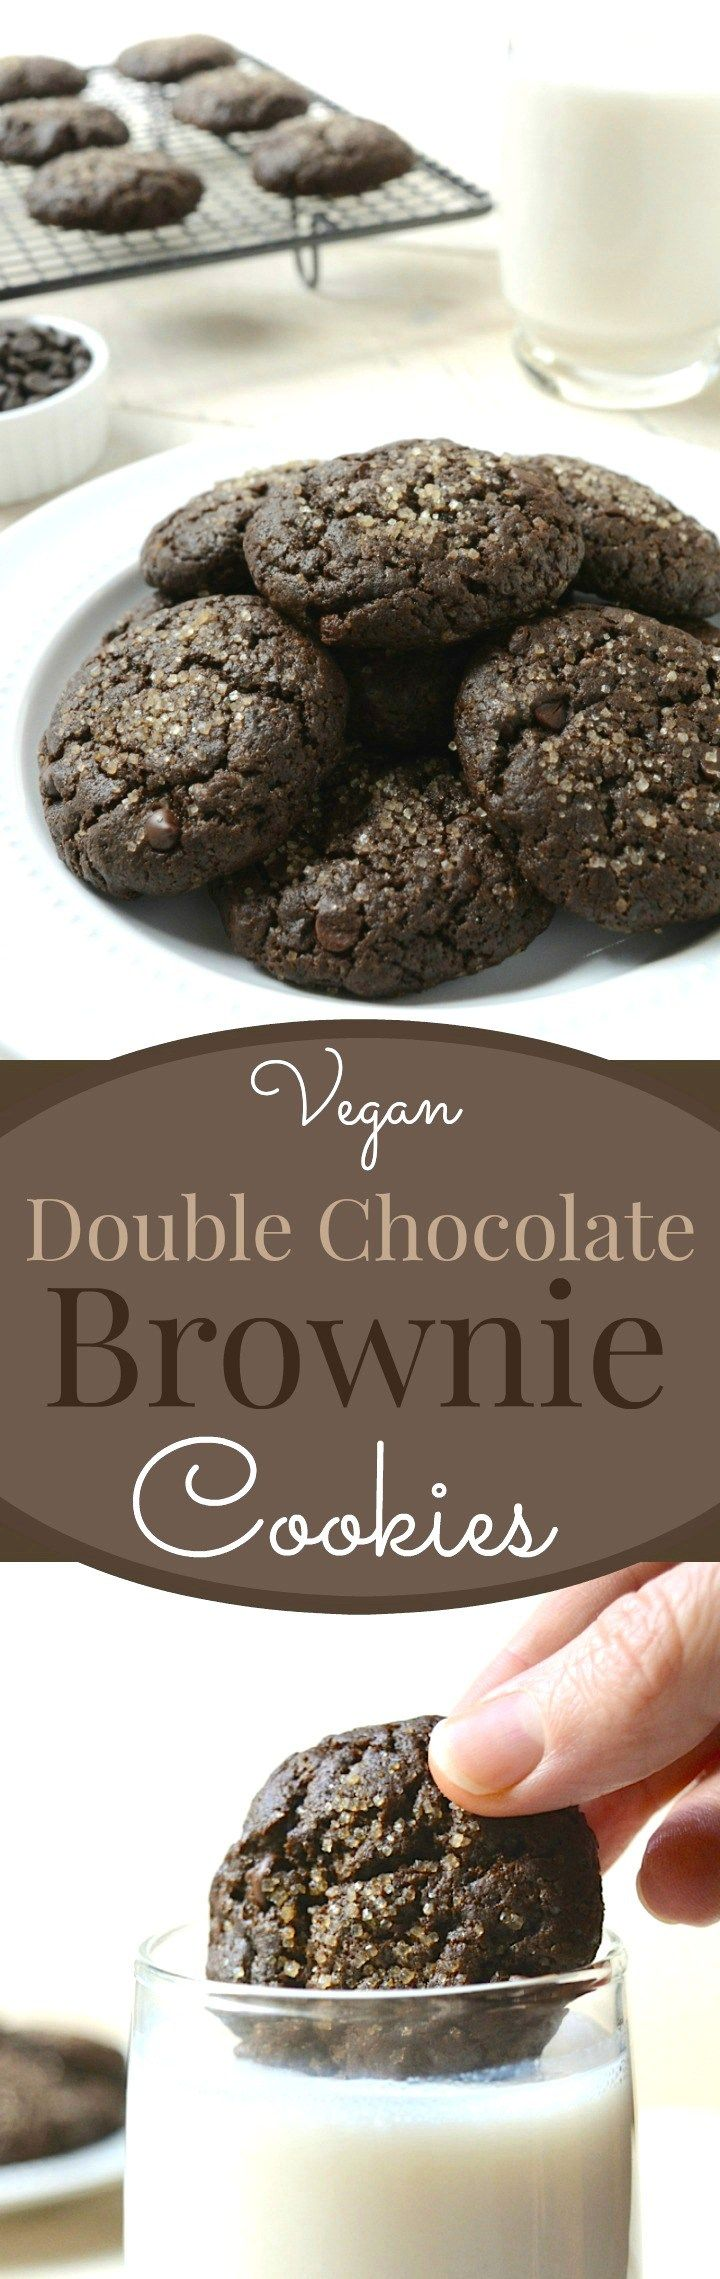 Vegan Double Chocolate Brownie Cookies are a decadent brownie crammed into a cookie then loaded with chocolate chips. They are egg-free, dairy-free and made with 8 simple ingredients you probably have on hand!